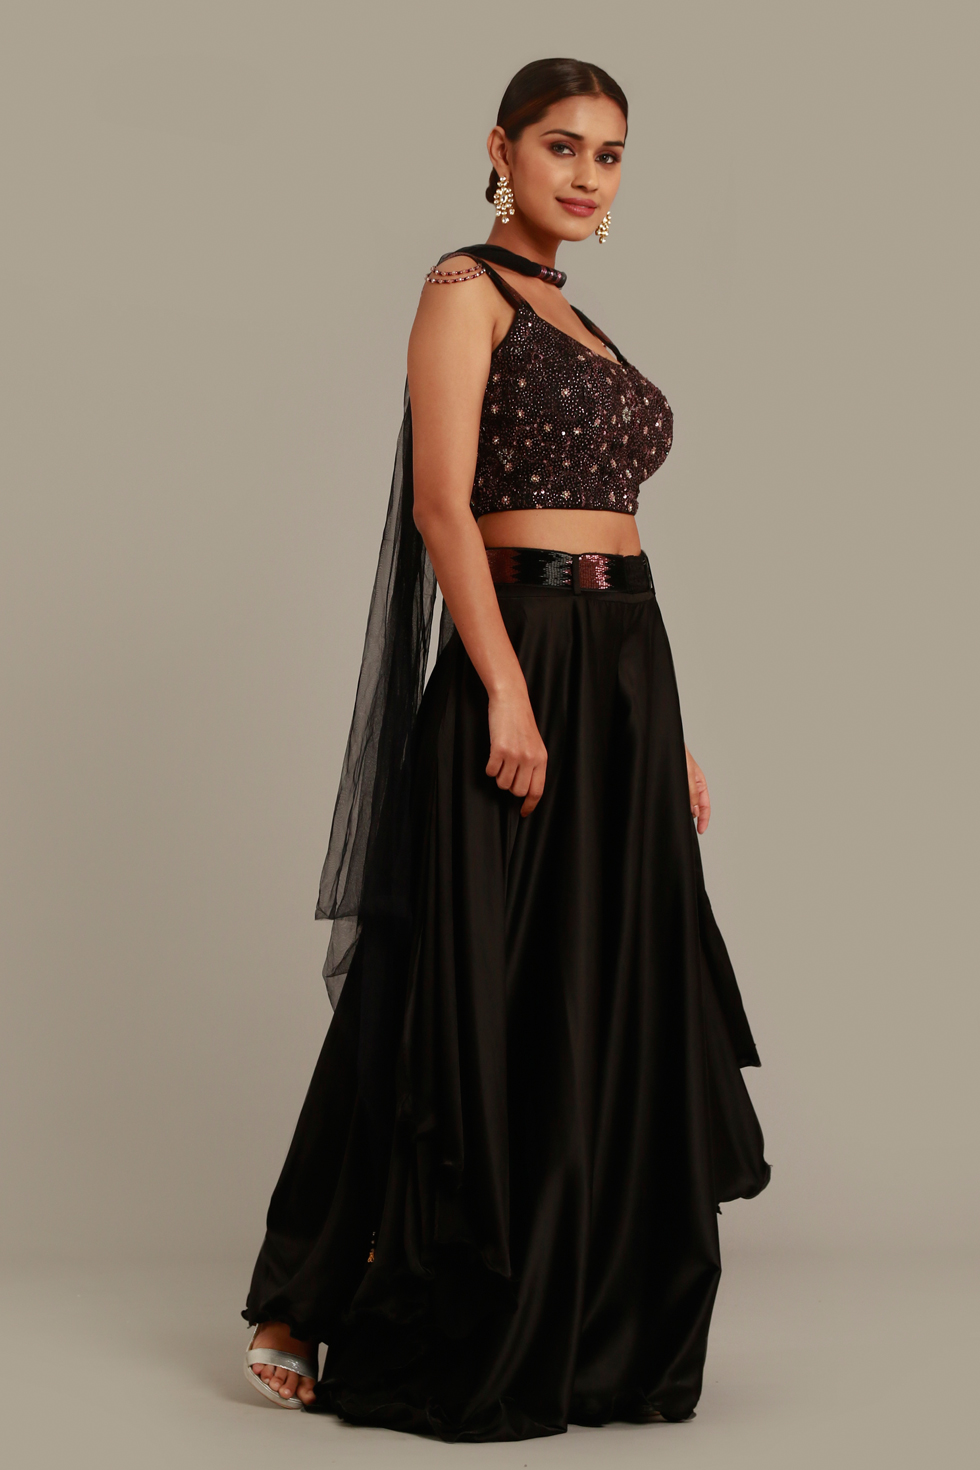 Solid black draped palazzo pant set with matching embroidered top, belt, tassels and necklace dupatta